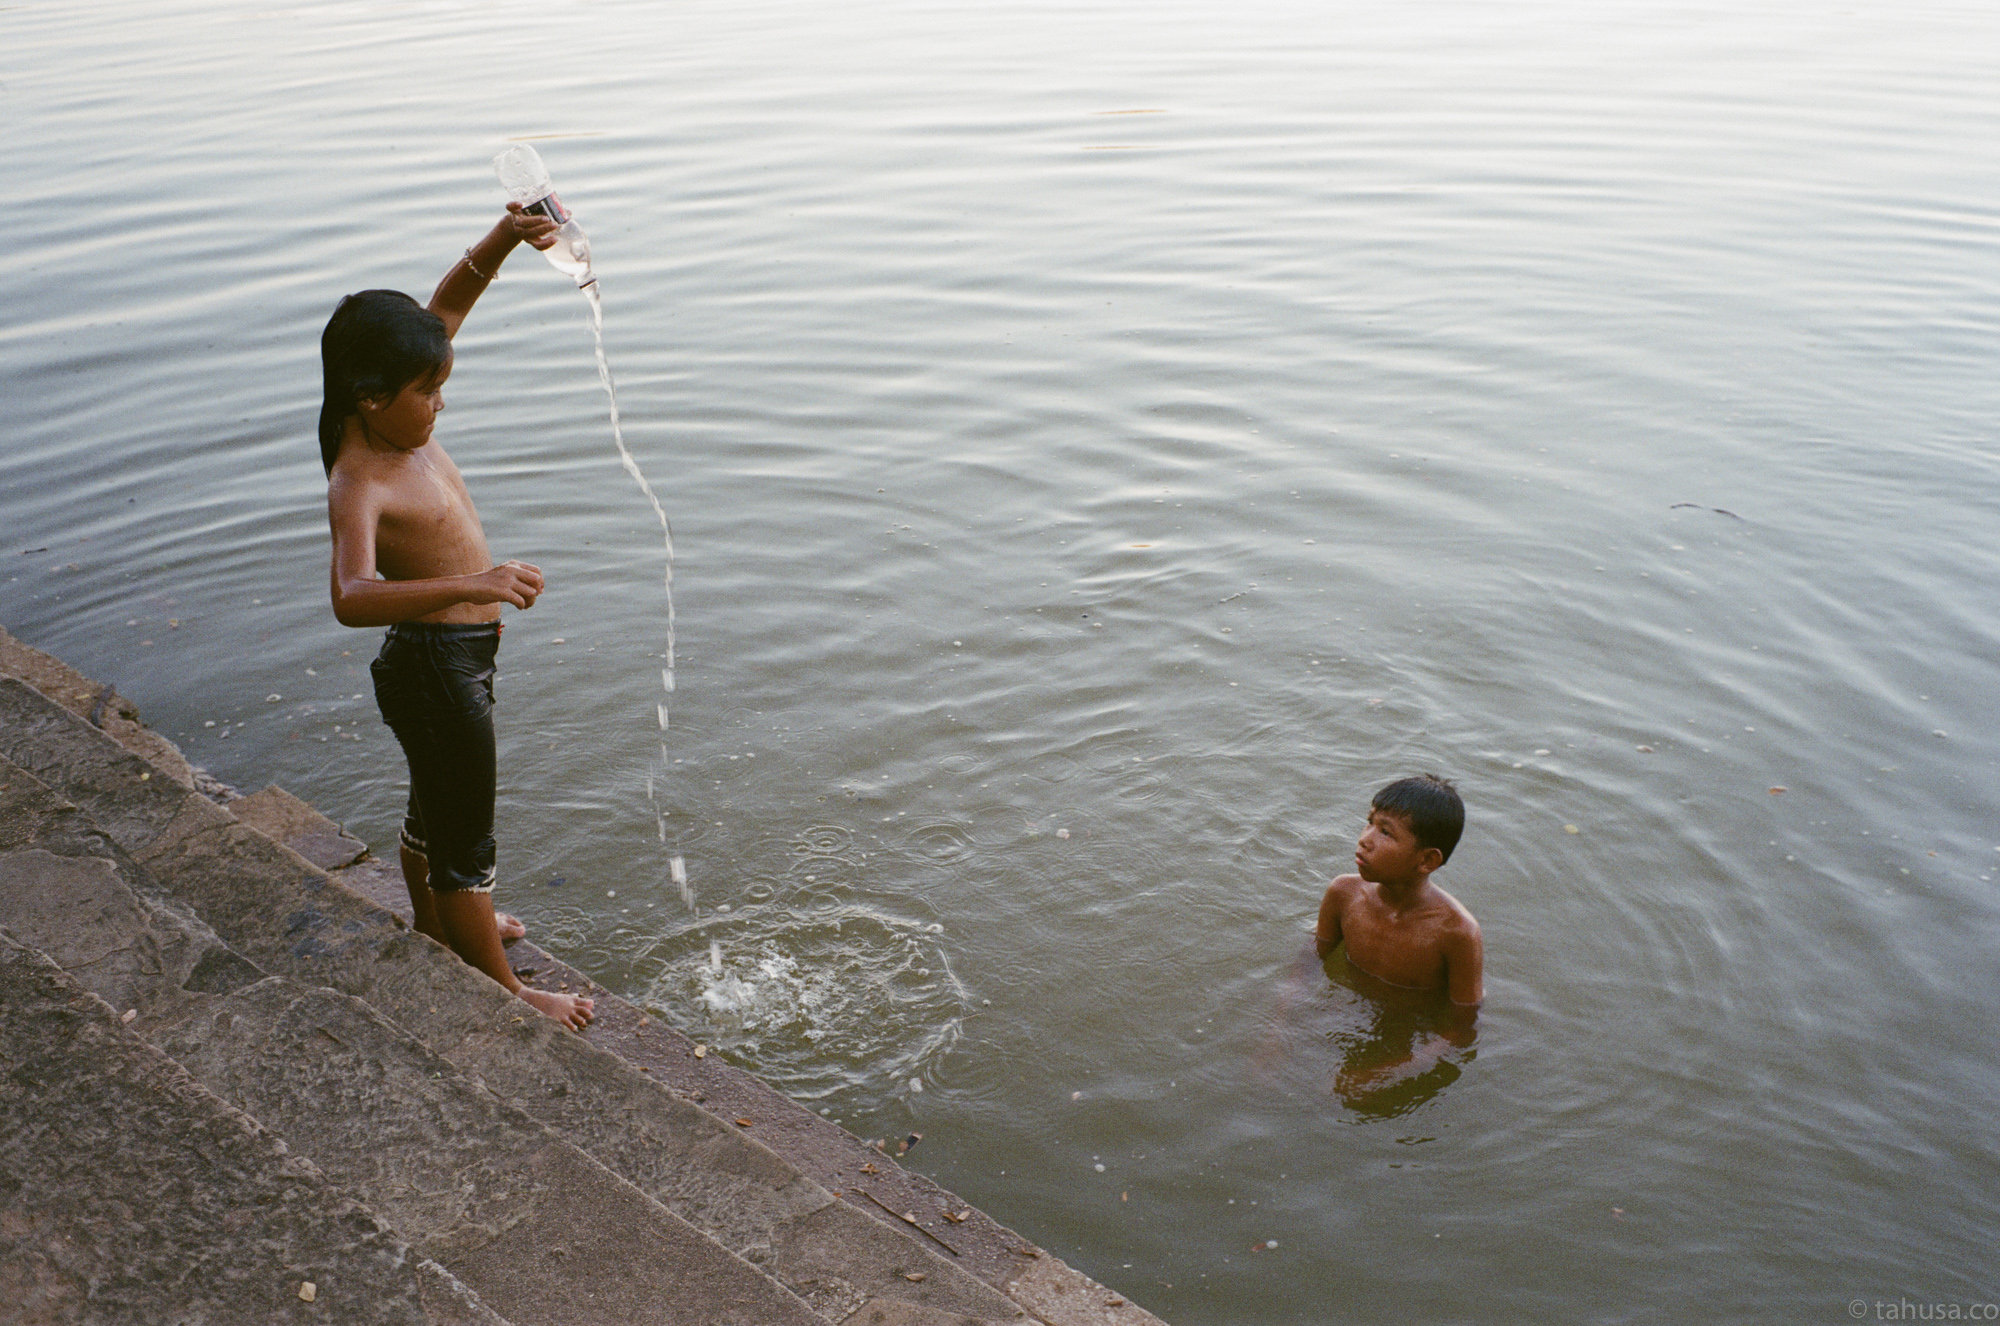 brother-and-sister-playing-around-outside-lake-dropping-water-cambodia-angkor-siem-reap-south-east-asia-travel-travelling-street-snap-using-leica-m2-summilux-35mm-f1.4-infinity-lock-pre-asph-analog-film-is-fuji-fujifilm-superia-premium-400-iso400